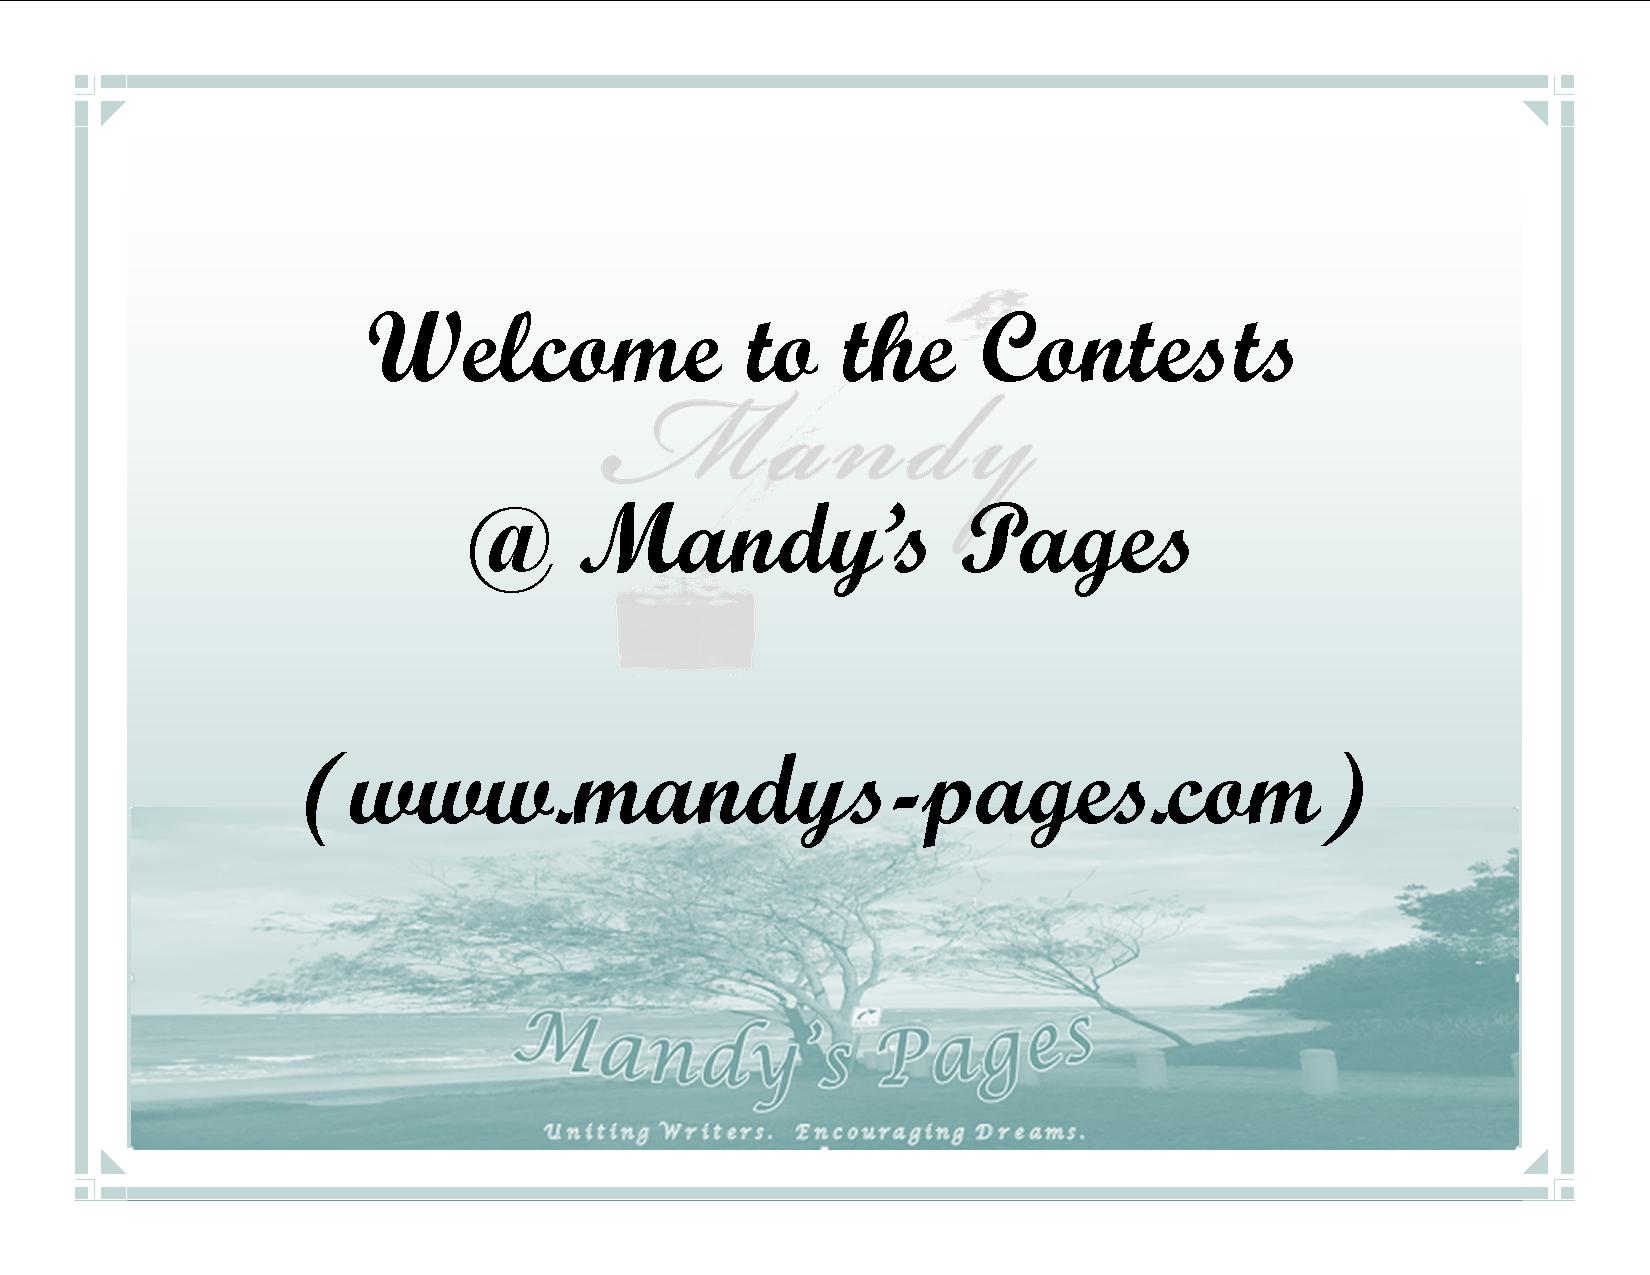 Contests at Mandy's Pages